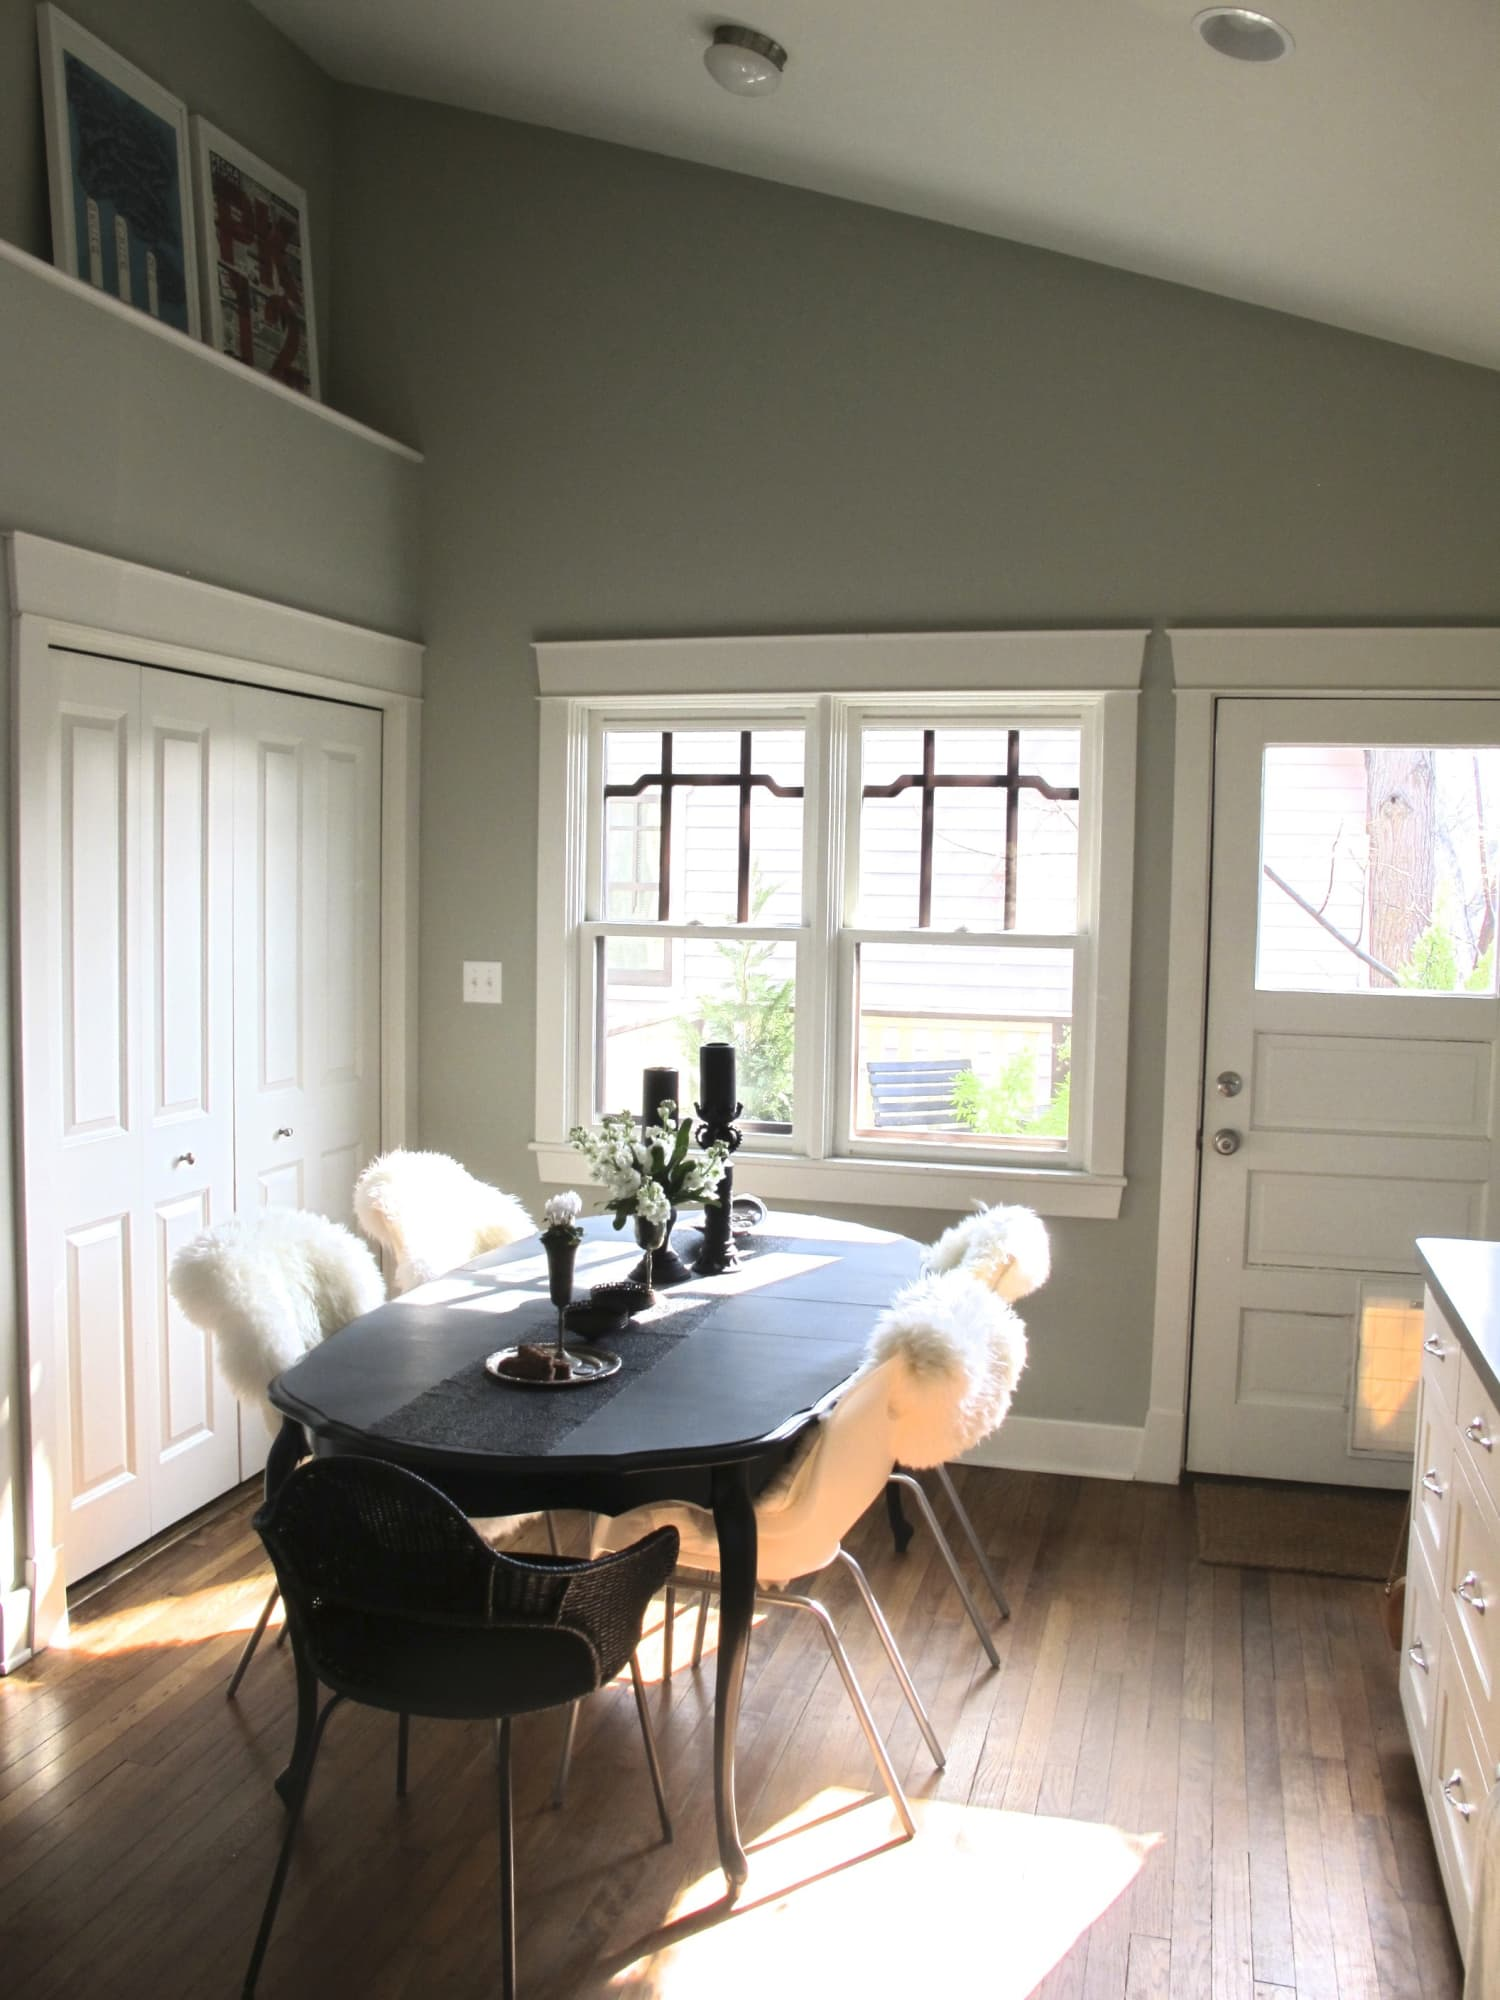 Imaginecozy Staging A Kitchen: So Cozy: Sheepskin Dining Chair Covers